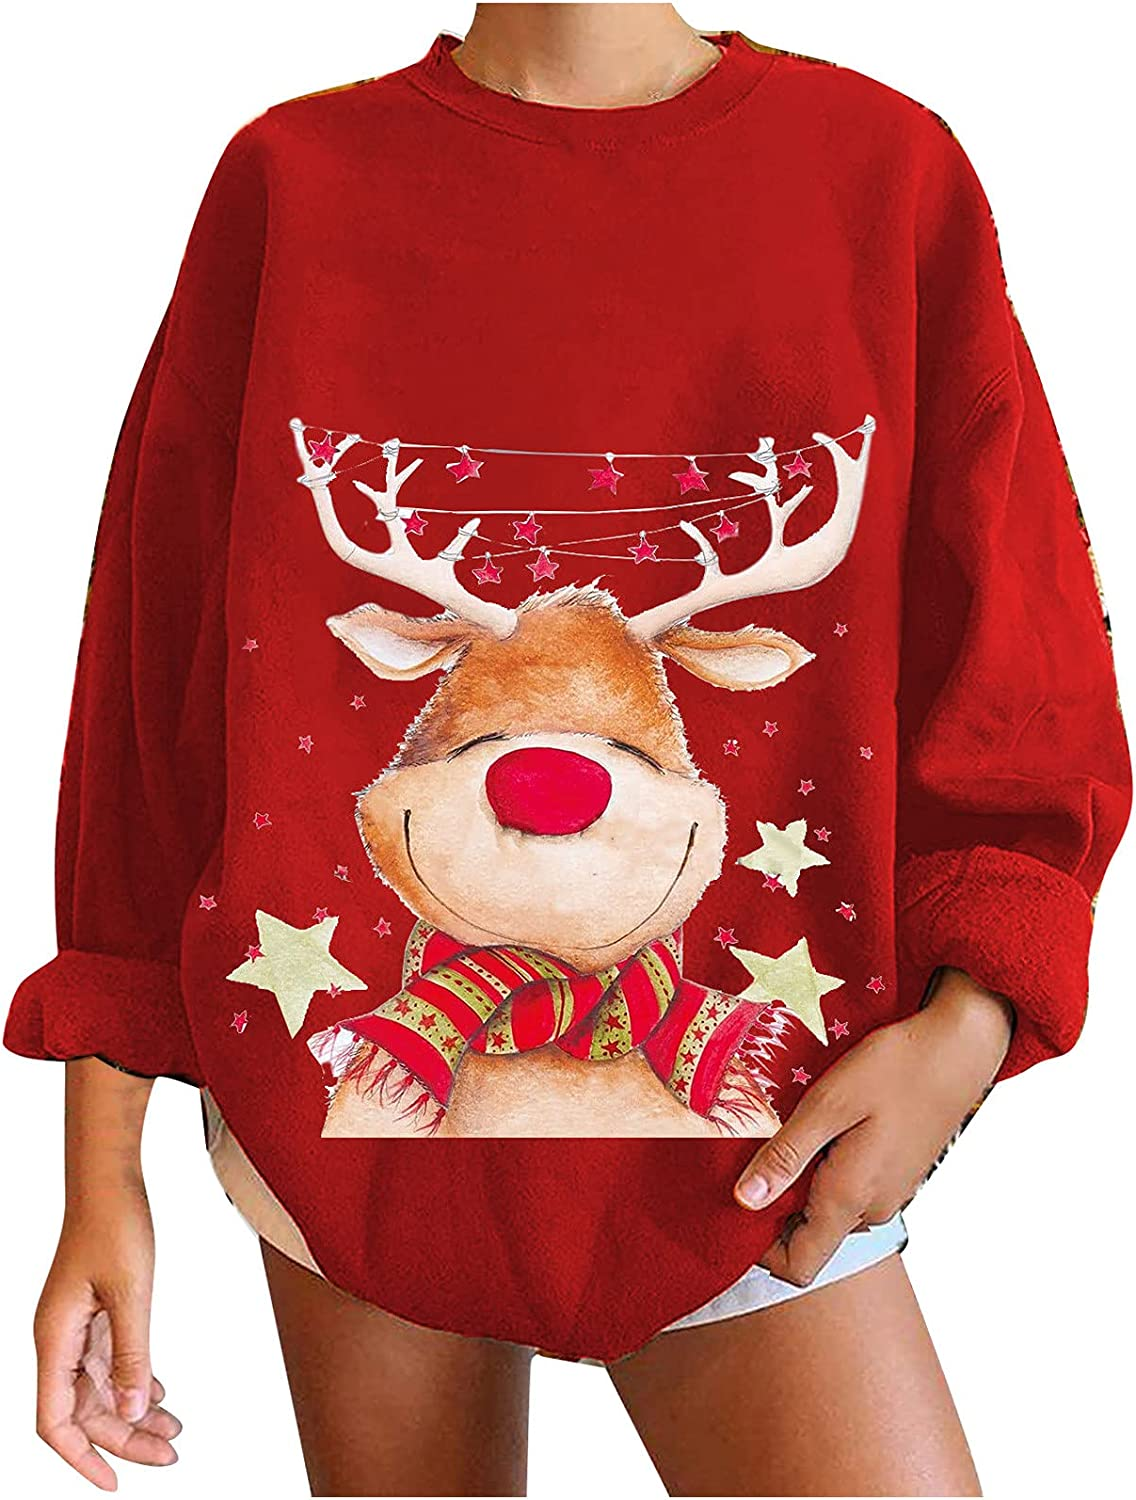 Kanzd Oversized Christmas Sweatshirts Be super welcome for Women L Casual Outlet sale feature Women's